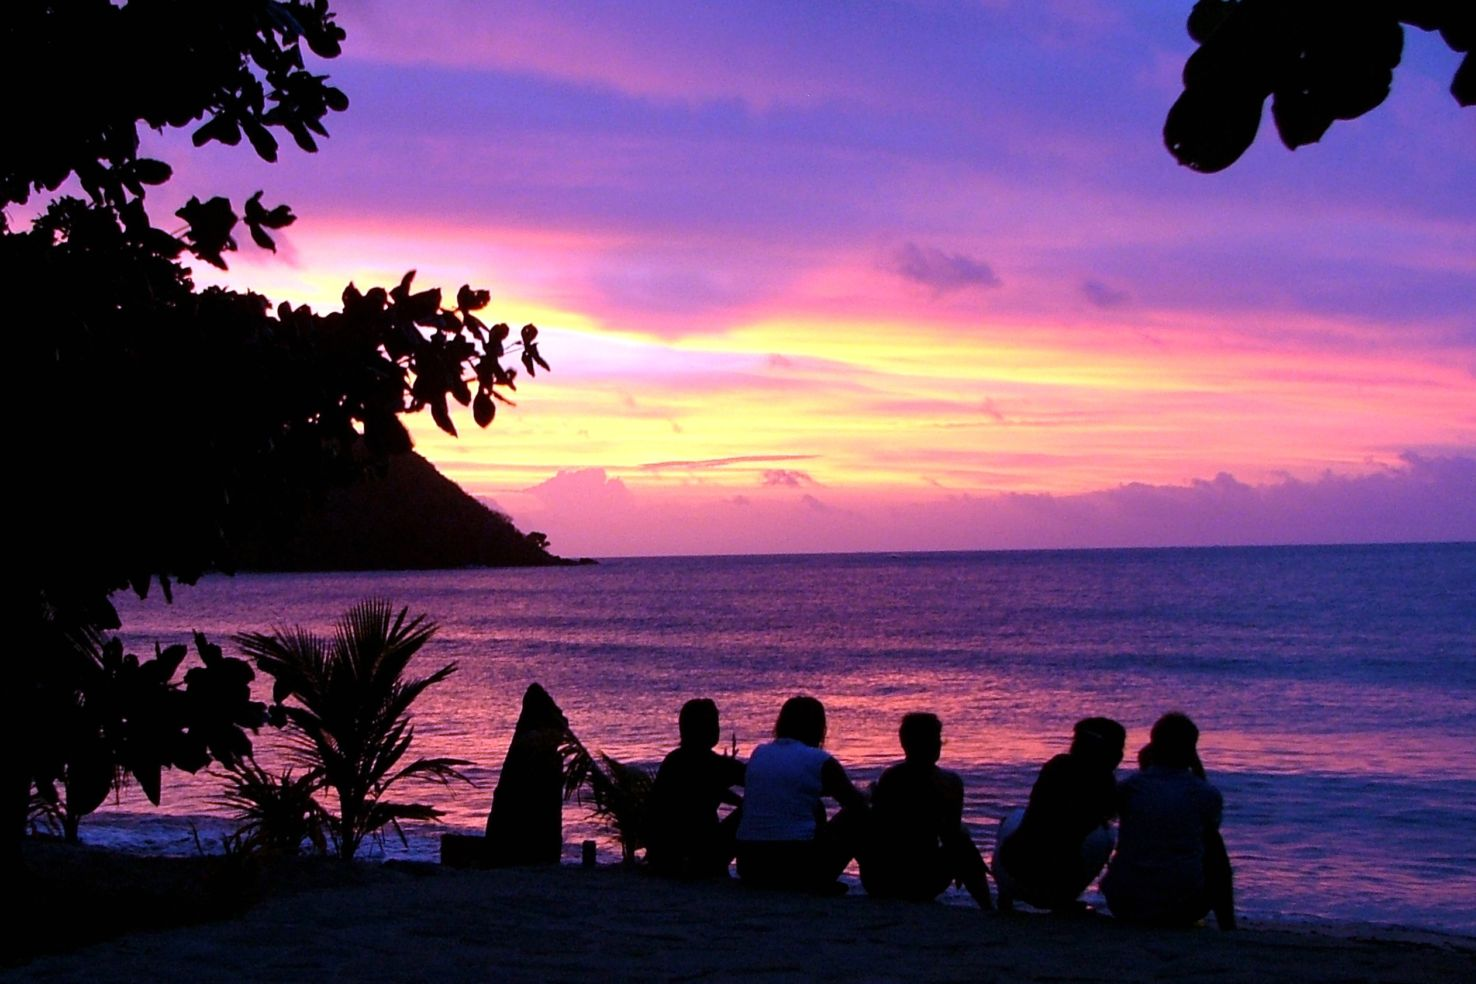 Sunset on the beach in Fiji